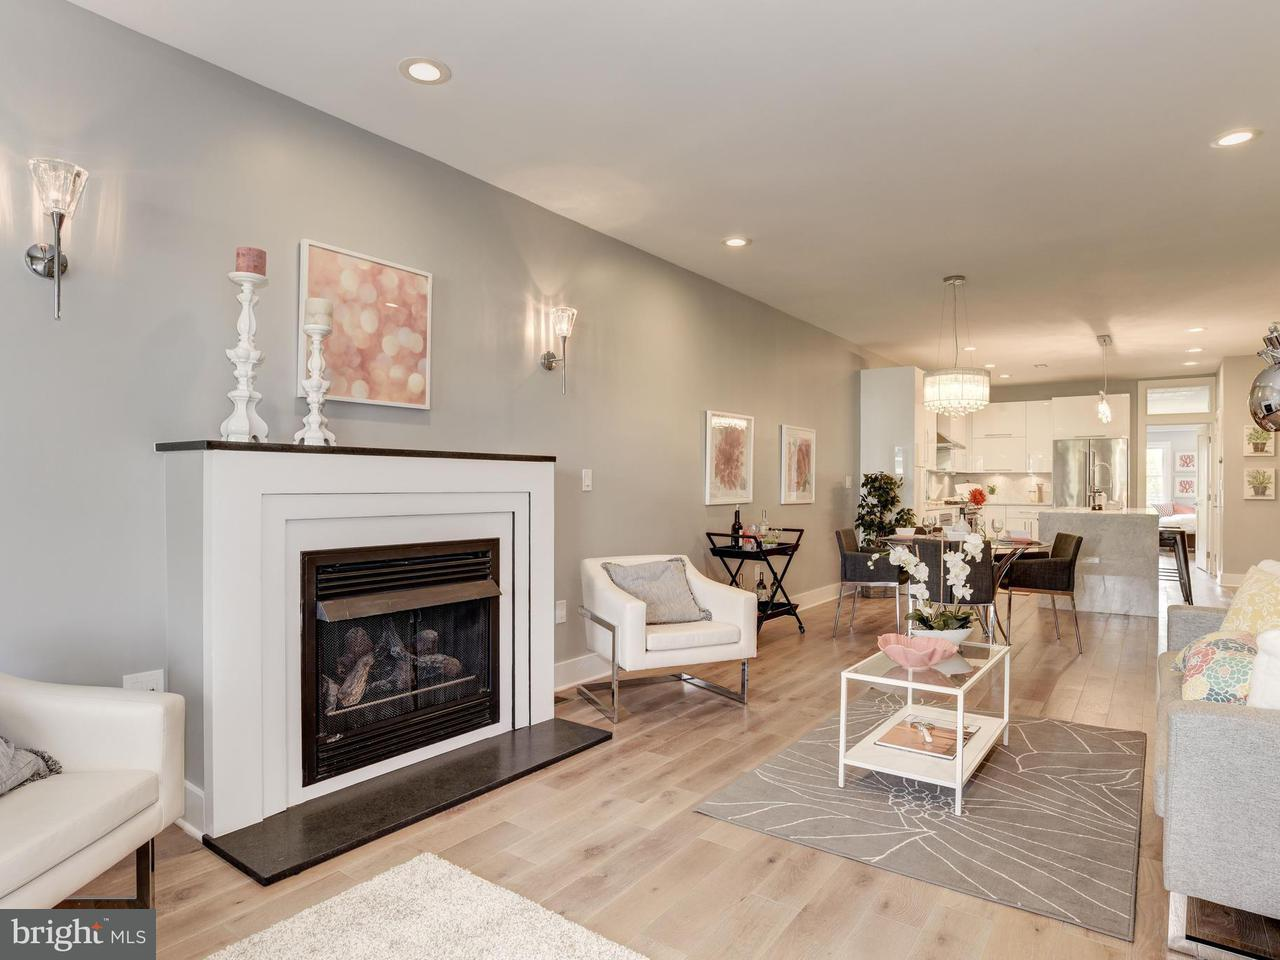 Duplex for Sale at 758 Fairmont St Nw #1 758 Fairmont St Nw #1 Washington, District Of Columbia 20001 United States